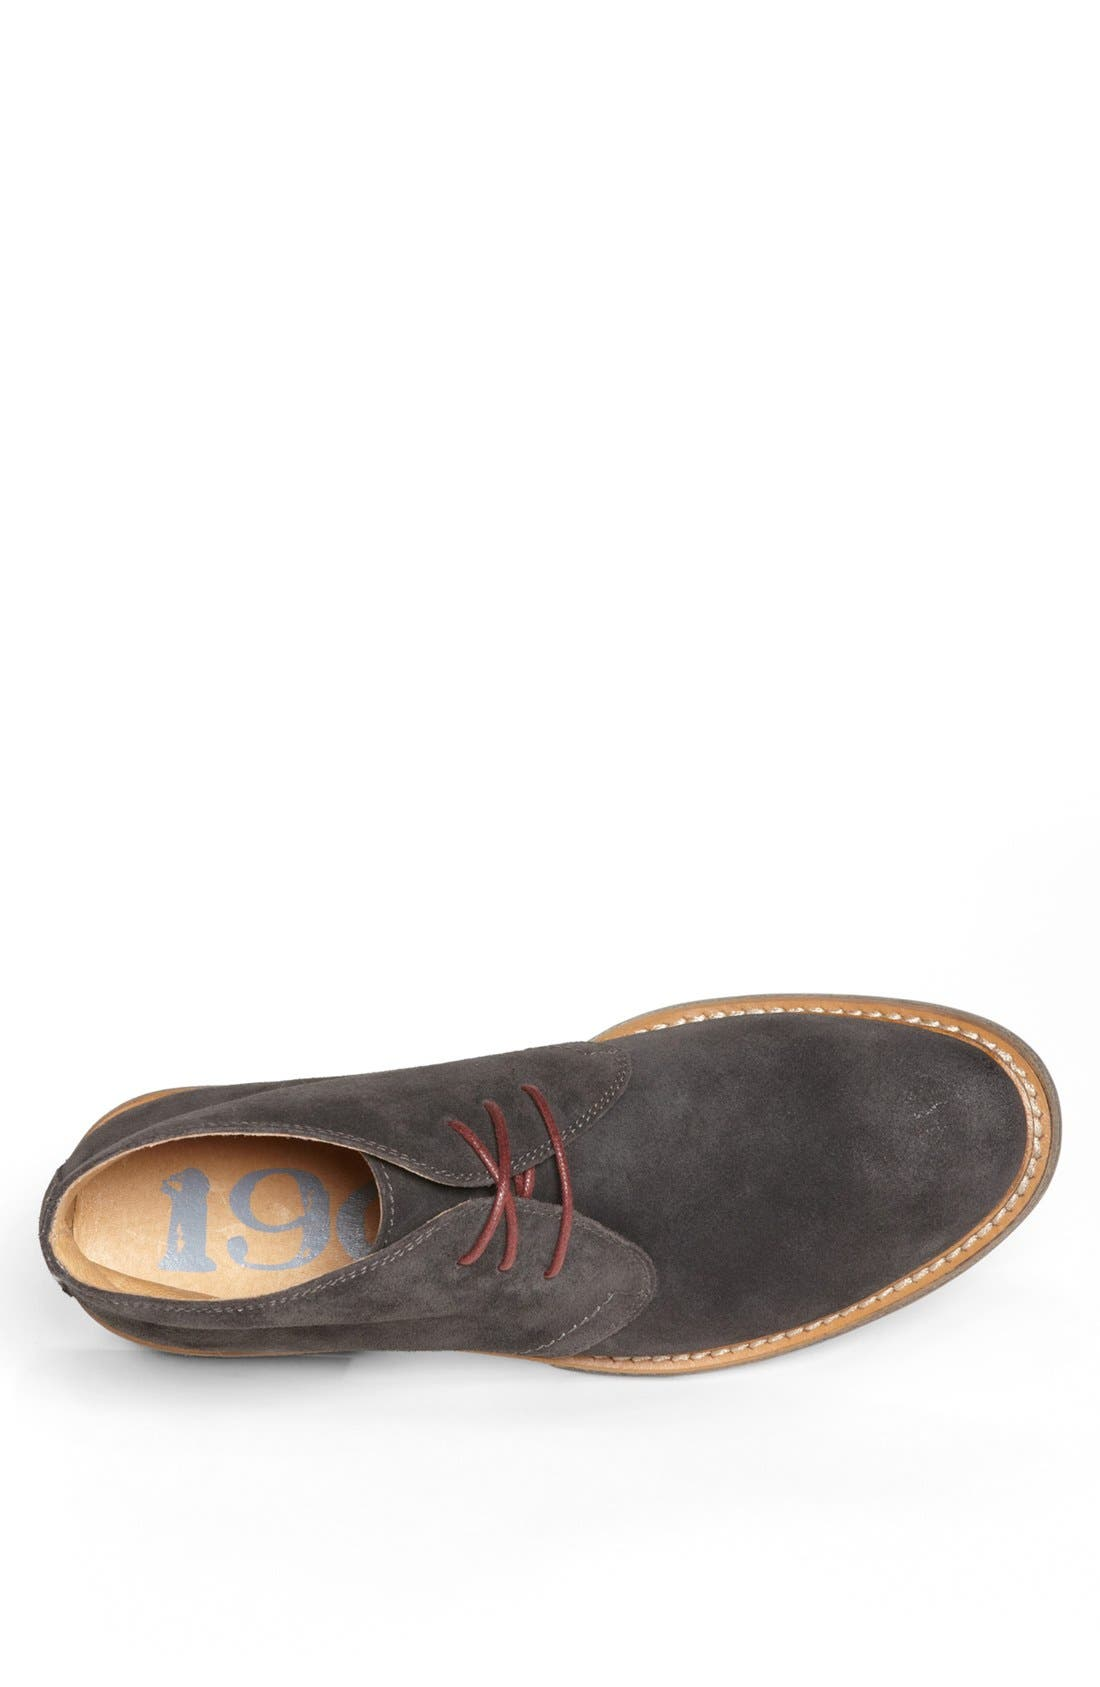 'Canyon' Chukka Boot,                             Alternate thumbnail 13, color,